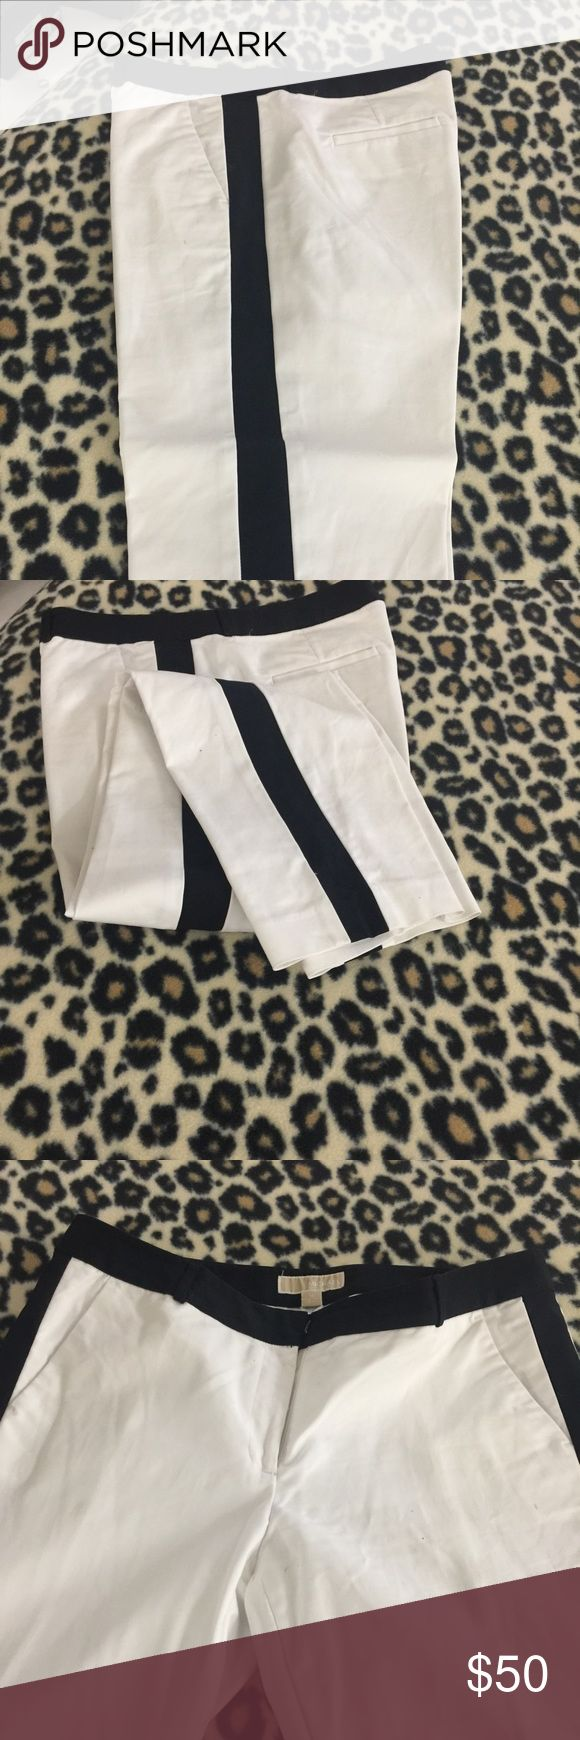 Michael Kira Tuxedo type ankle pants Beautiful classic black and white tuxedo striped pants. Side packets in front slash pockets in back. Almost new Michael Kors Pants Ankle & Cropped